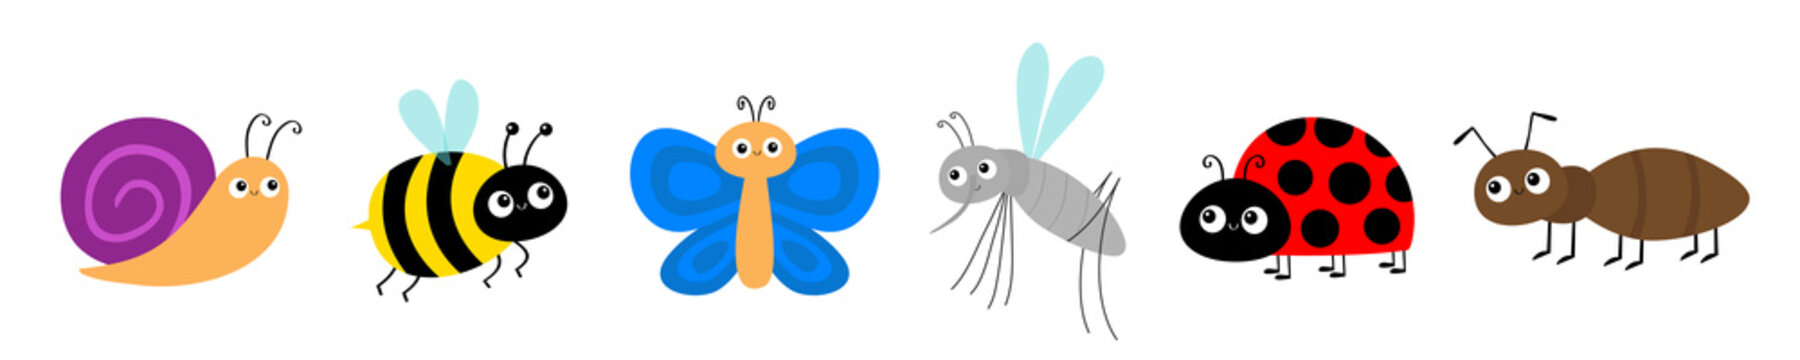 Ant, mosquito, butterfly, snail cochlea, bee bumblebee, lady bug ladybird flying insect icon set. Ladybug. Cute cartoon kawaii funny baby character. Happy Valentines Day. Flat design. White background